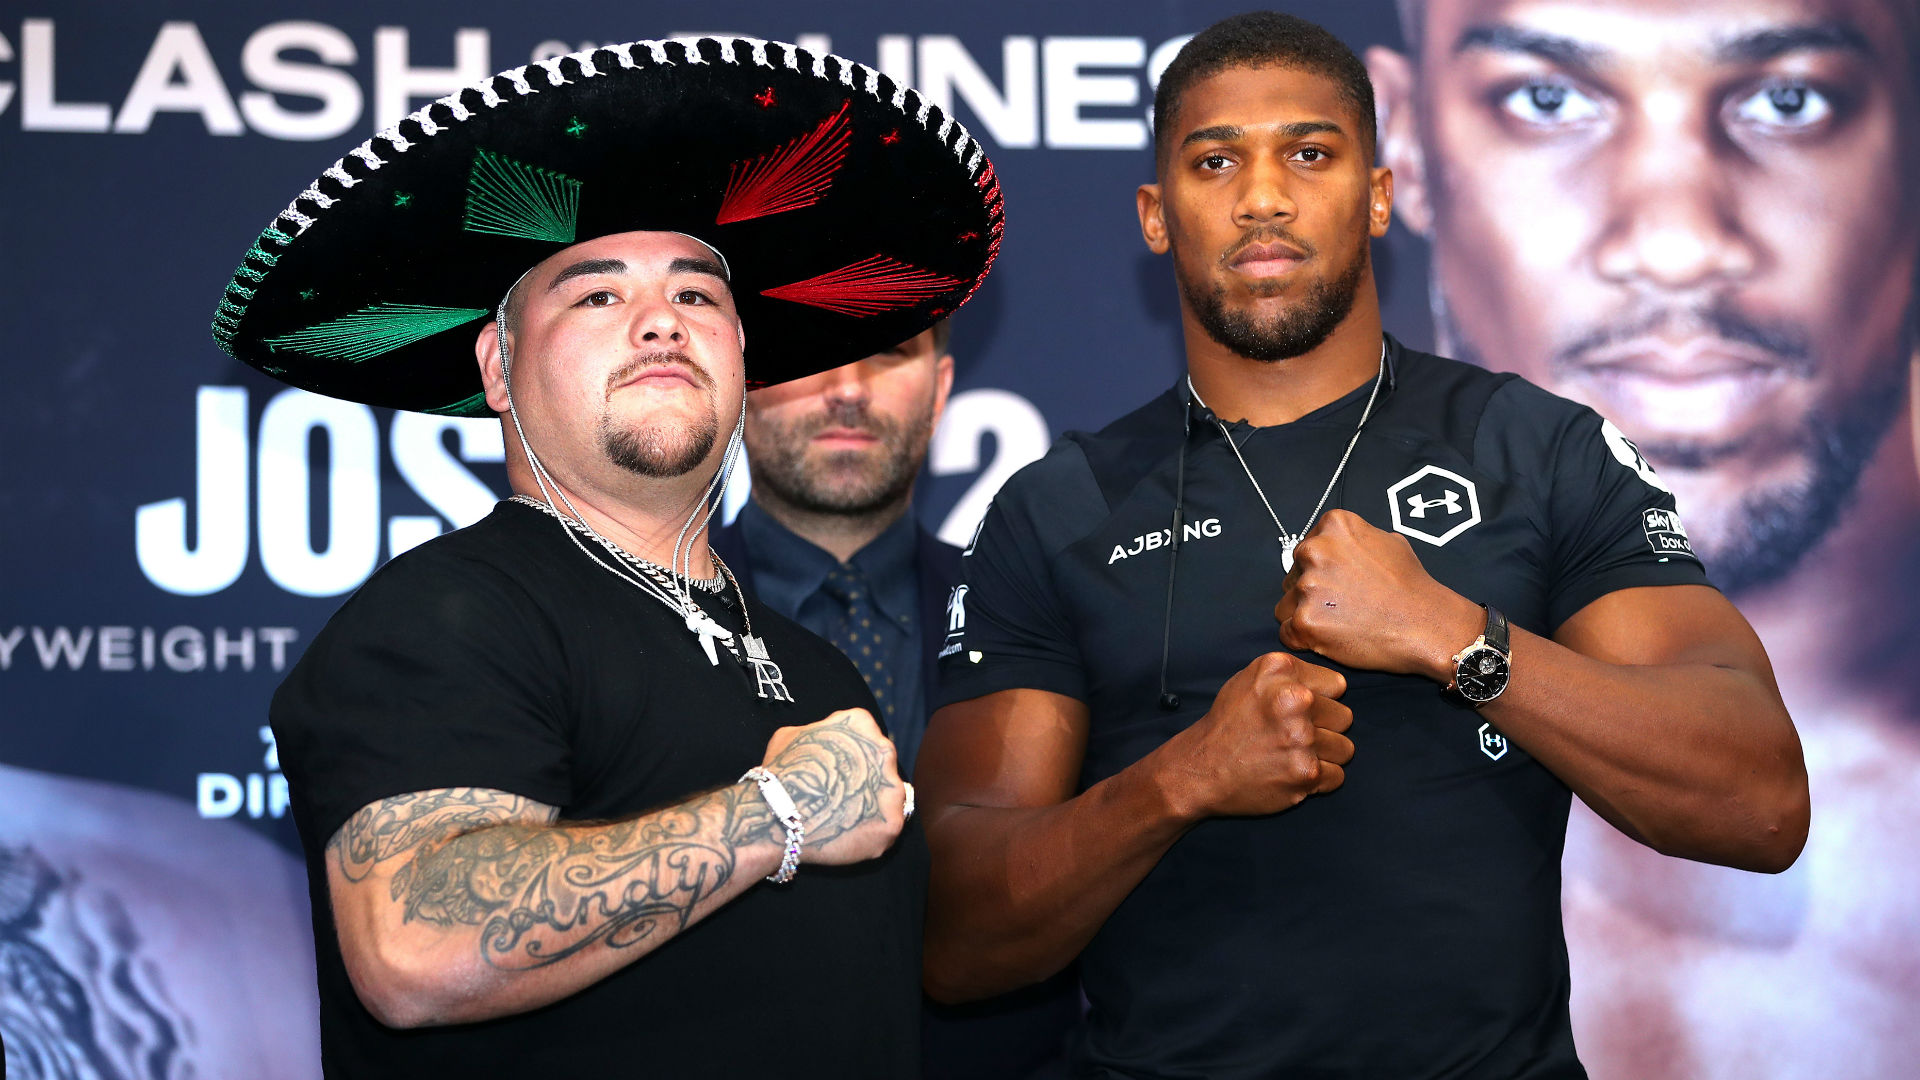 Until the beef is 100 per cent cooked, don't take it out of the oven - Joshua to be patient in Ruiz rematch